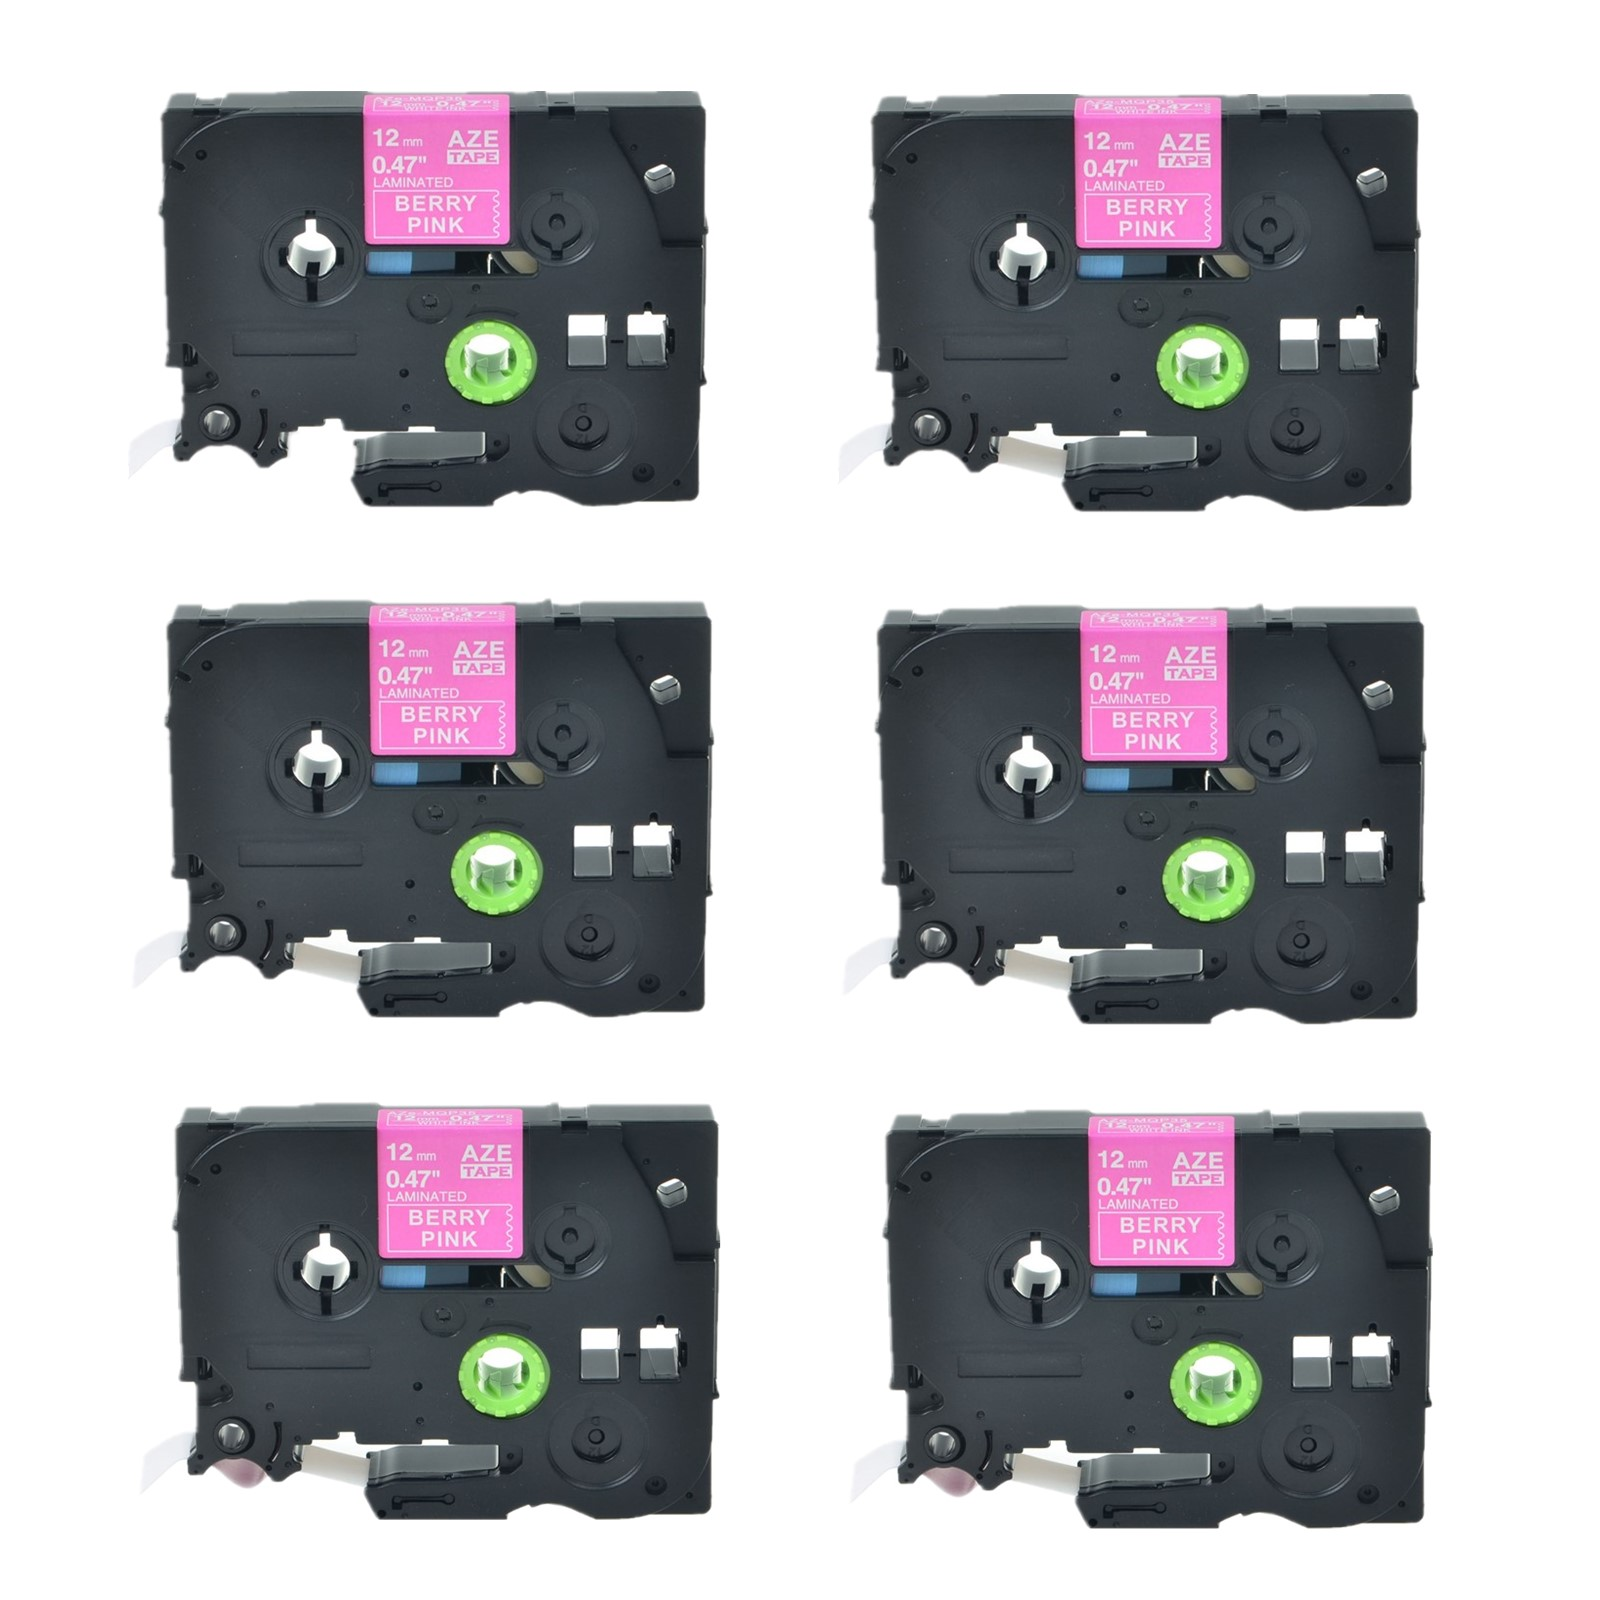 3PK White on Berry Pink Label Tape TZ TZe MQP35 For Brother P-Touch PT1090 12mm